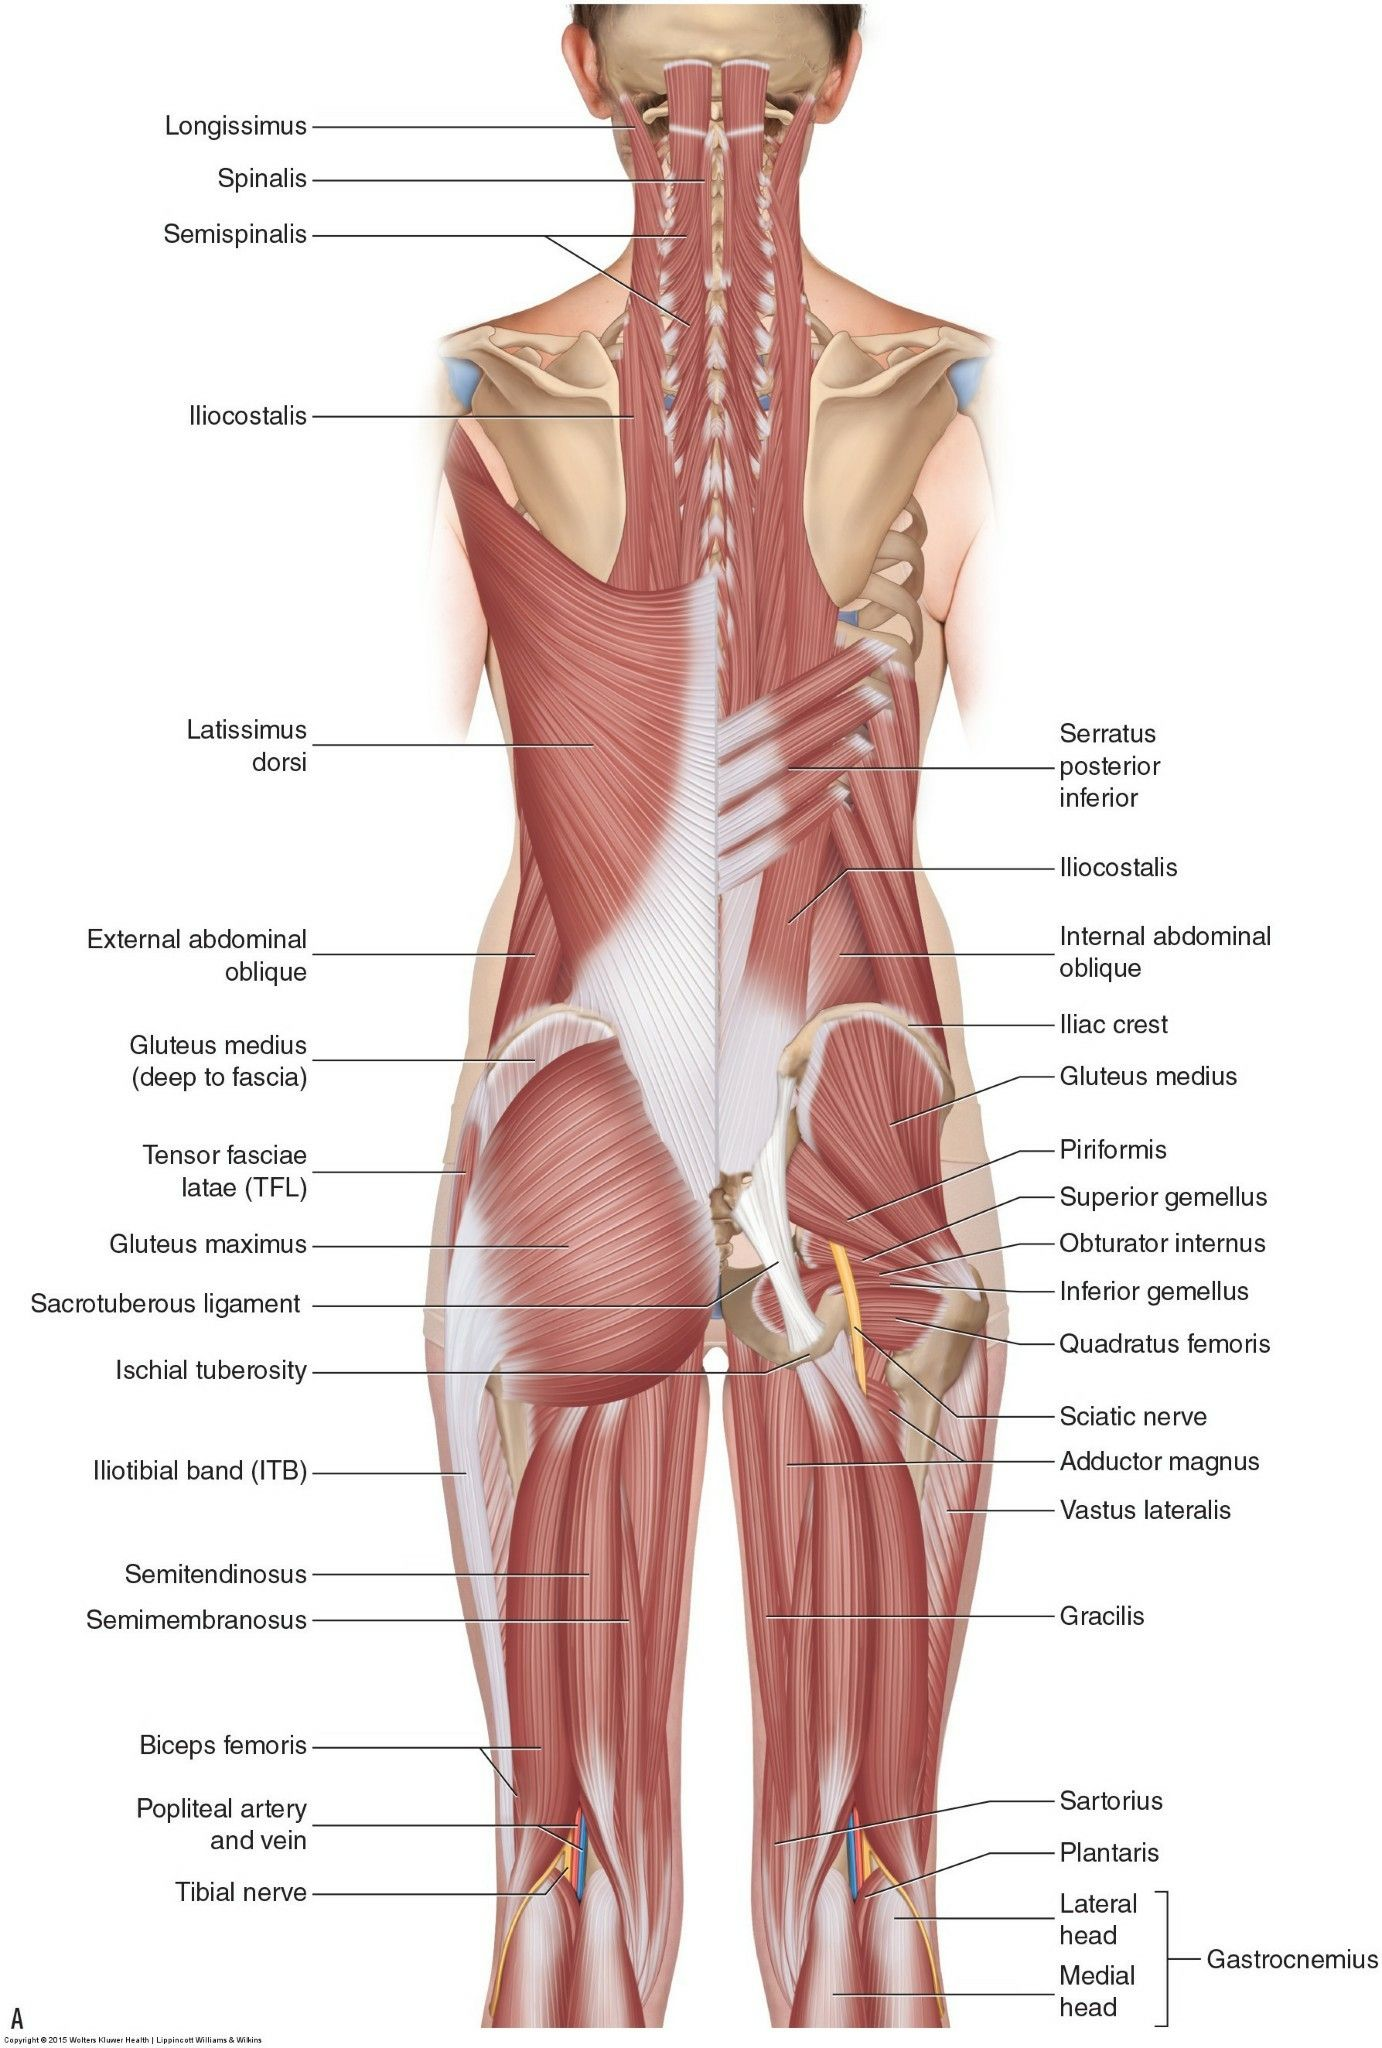 Pin by Kt Kröning on Anatomy | Pinterest | Anatomy